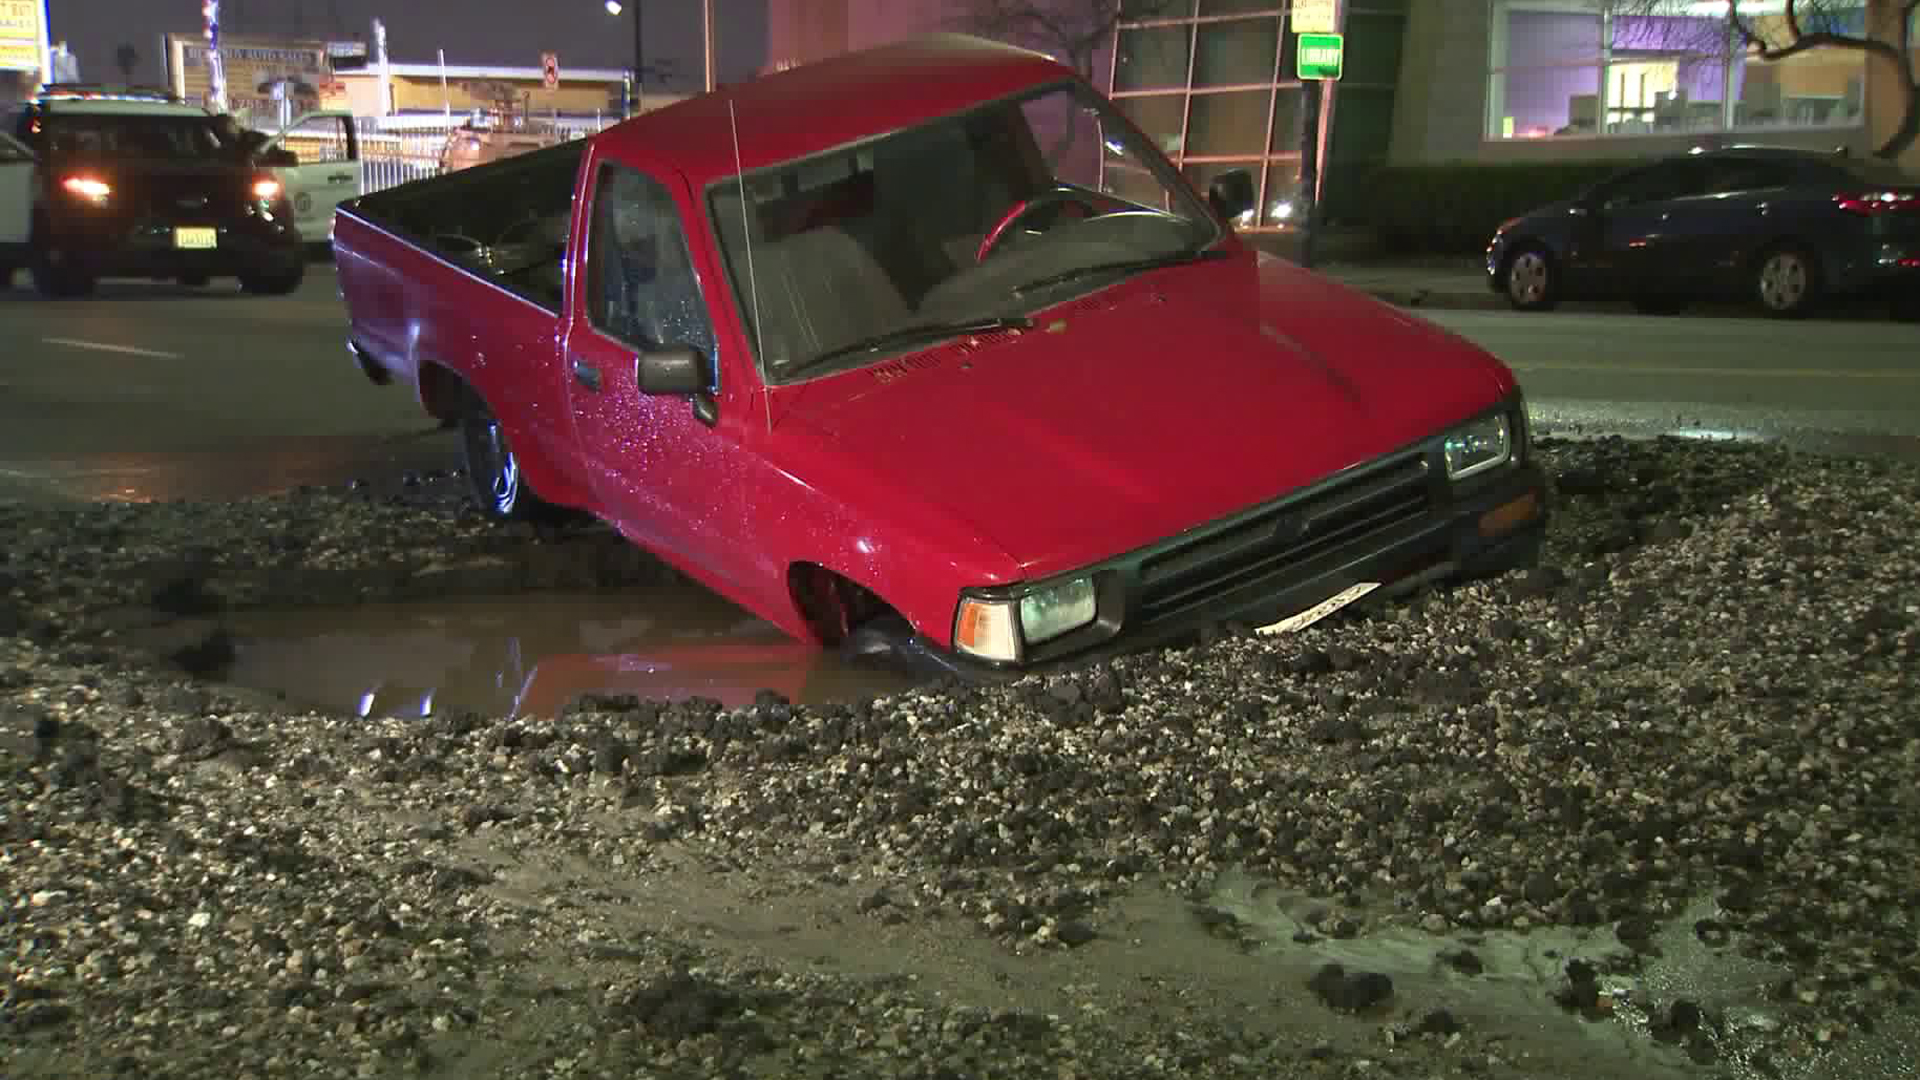 A truck became stuck in a sinkhole in South Los Angeles on March 1, 2019. (Credit: KTLA)